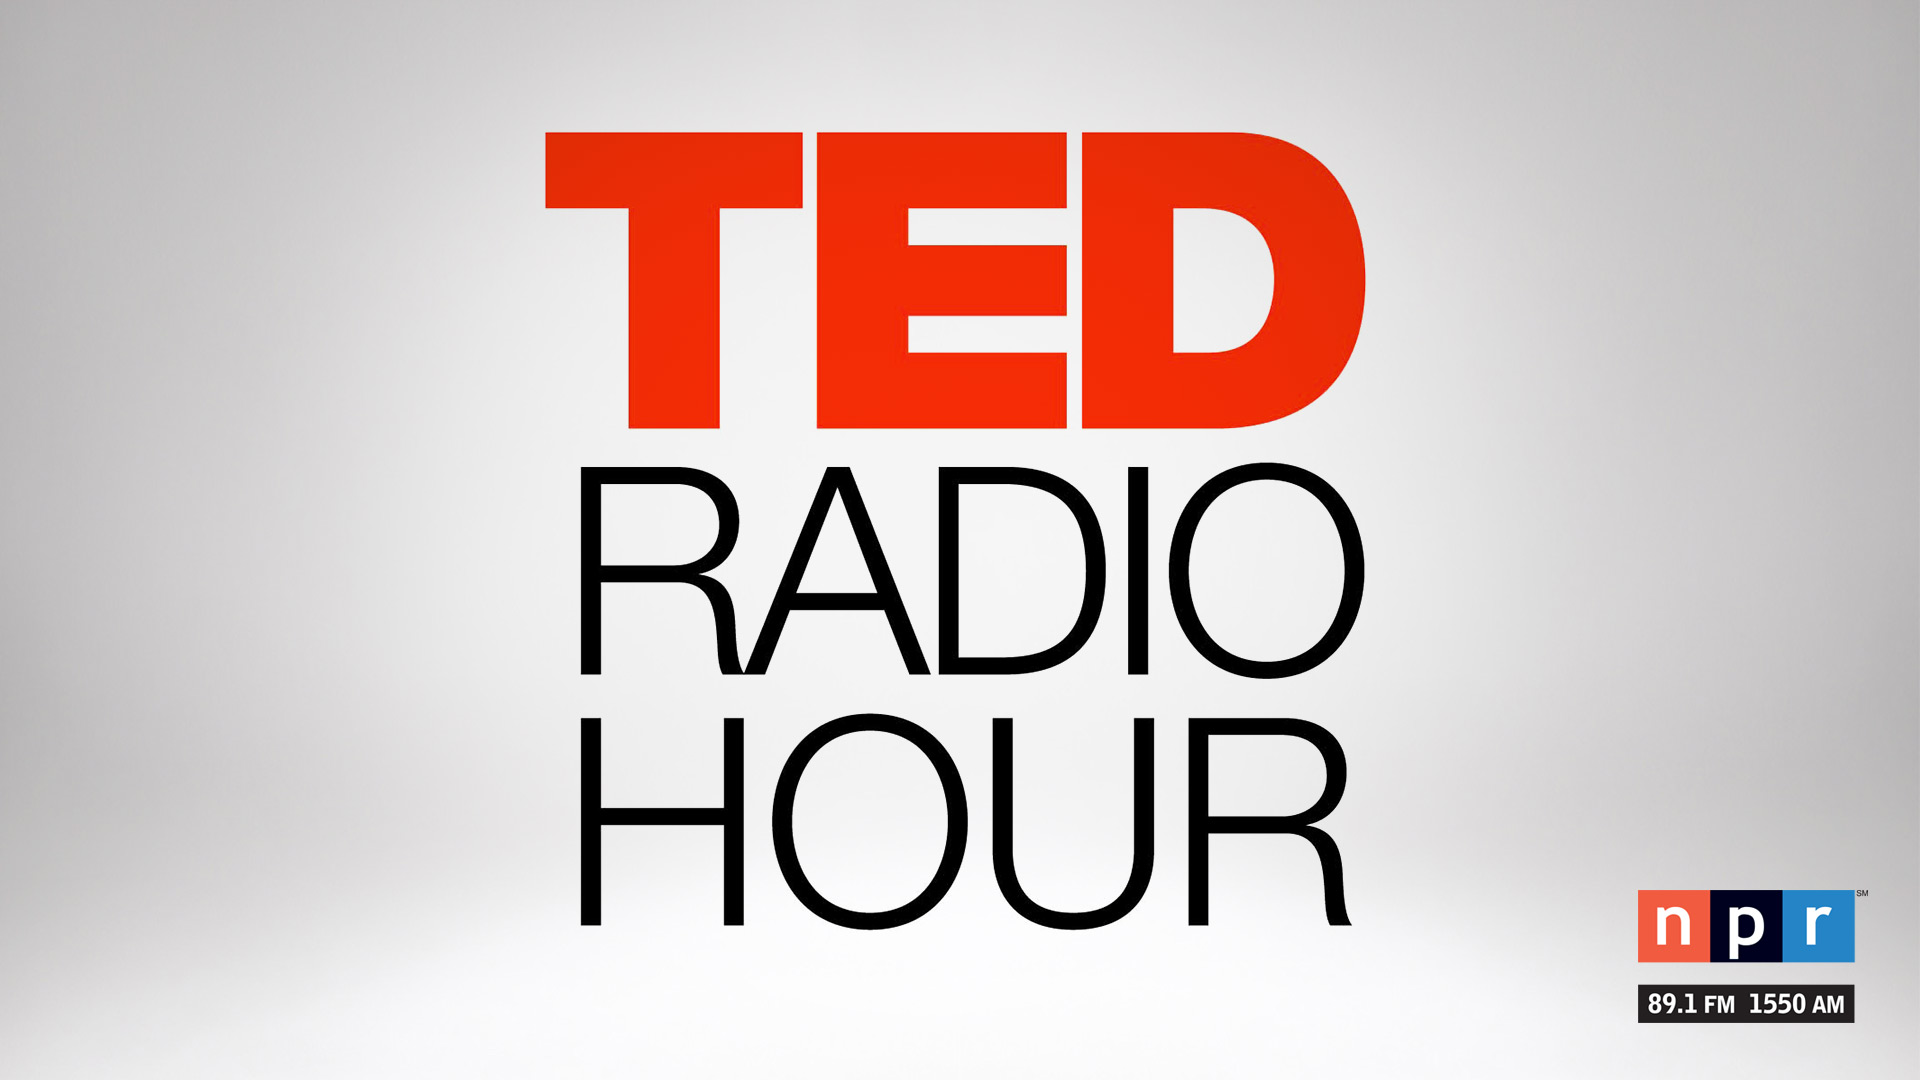 TED Radio Hour airs Sundays on NPR 89.1.